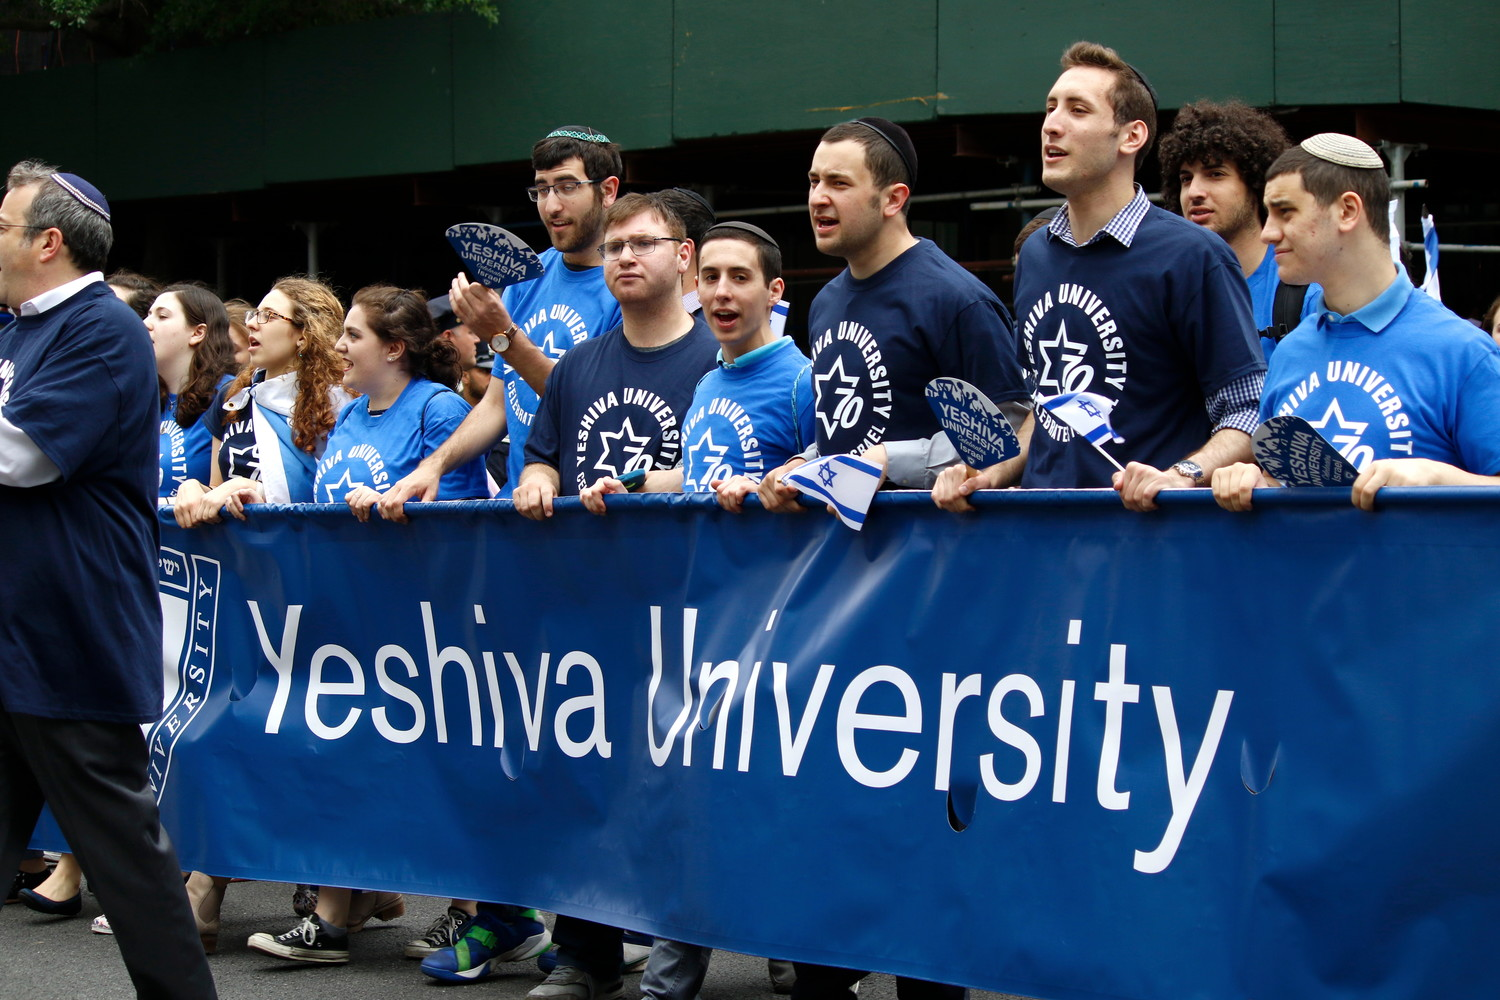 Some of the marchers representing Yeshiva University.